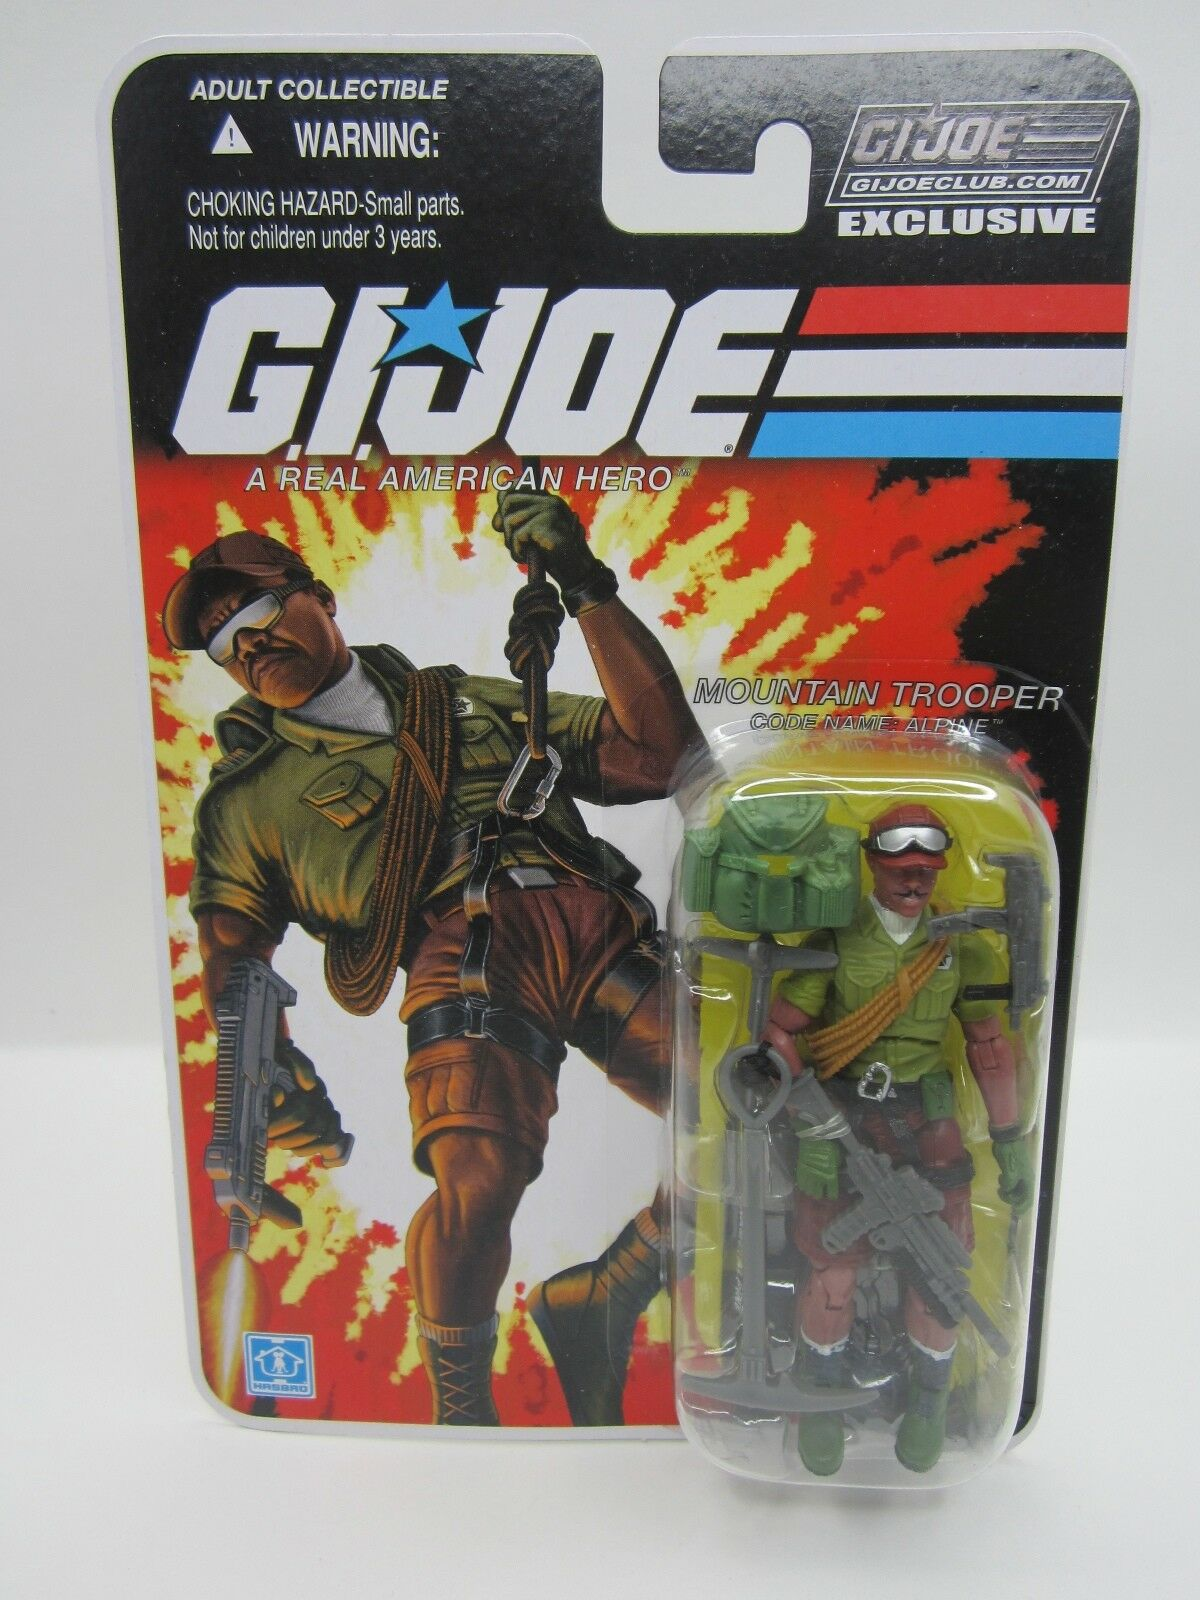 G.I. JOE COLLECTOR'S 3.0 CLUB EXCLUSIVE FSS 25TH 30TH ALPINE ACTION FIGURE MOC